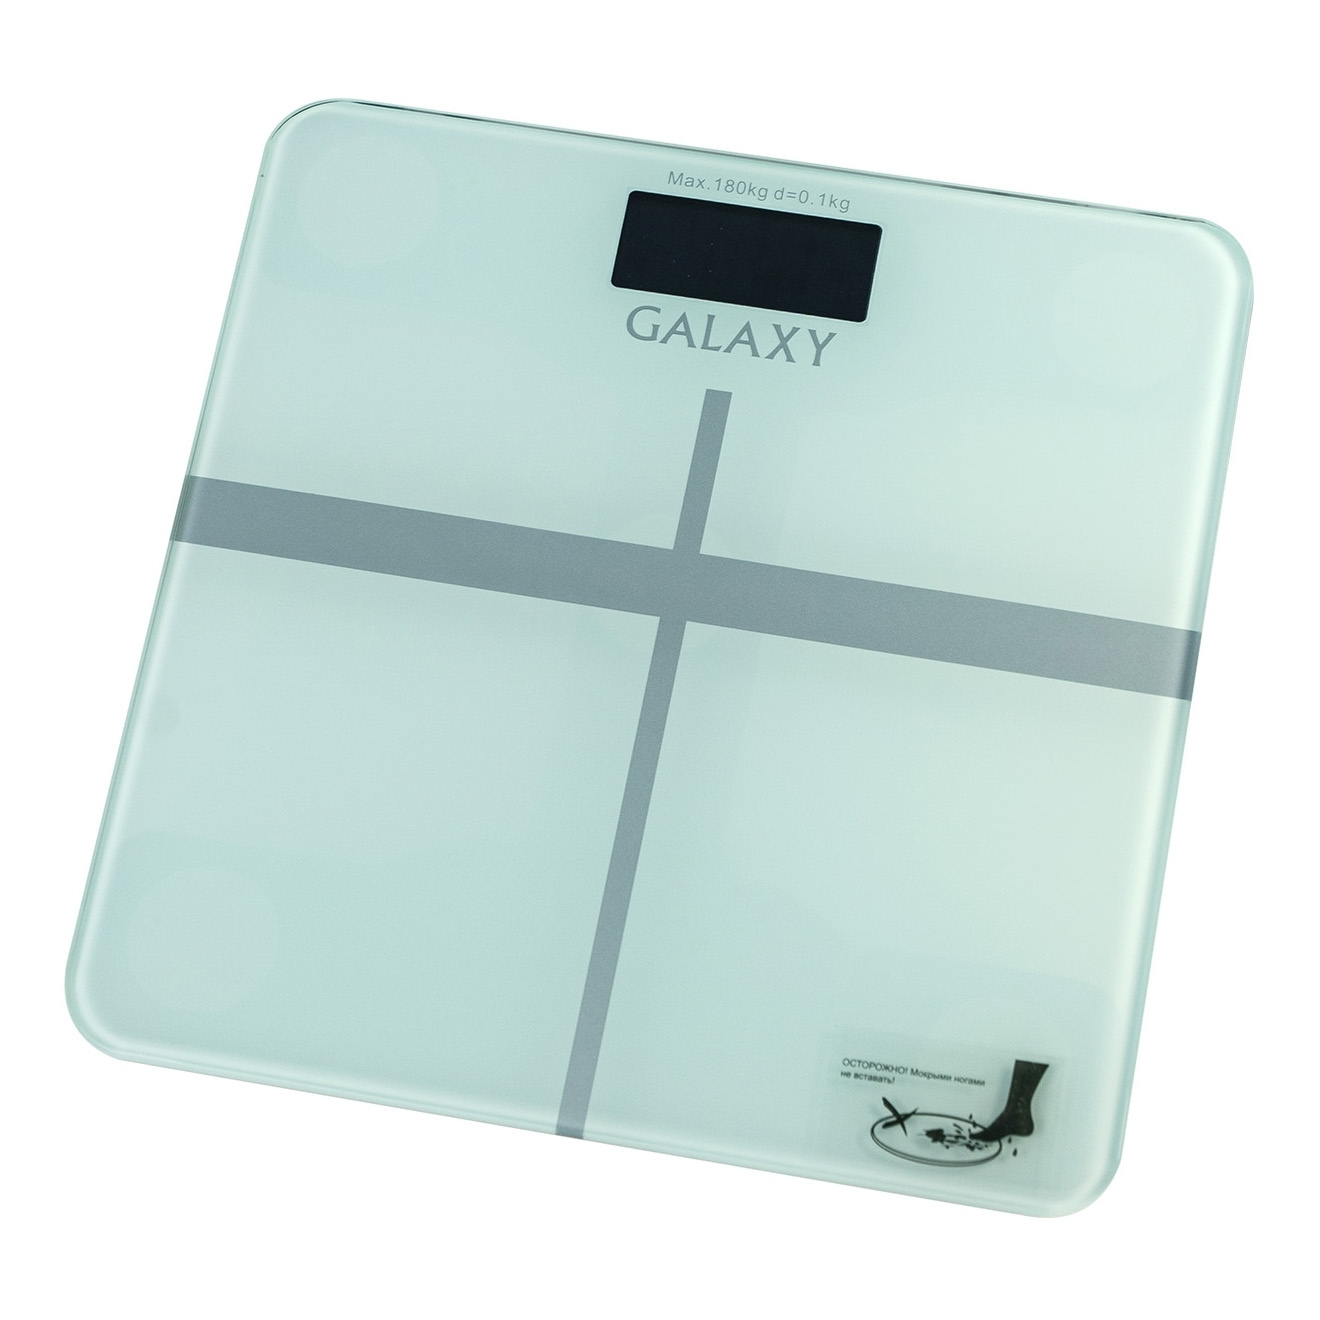 Scale floor Galaxy GL 4808 (Maximum load up to 180кг, measurement accuracy of 100 grams, LCD-дисплей, ultrathin design, автовкл/None, сверхточная touch sensor system) black sexy lace up design plain halter sleeveless crop top